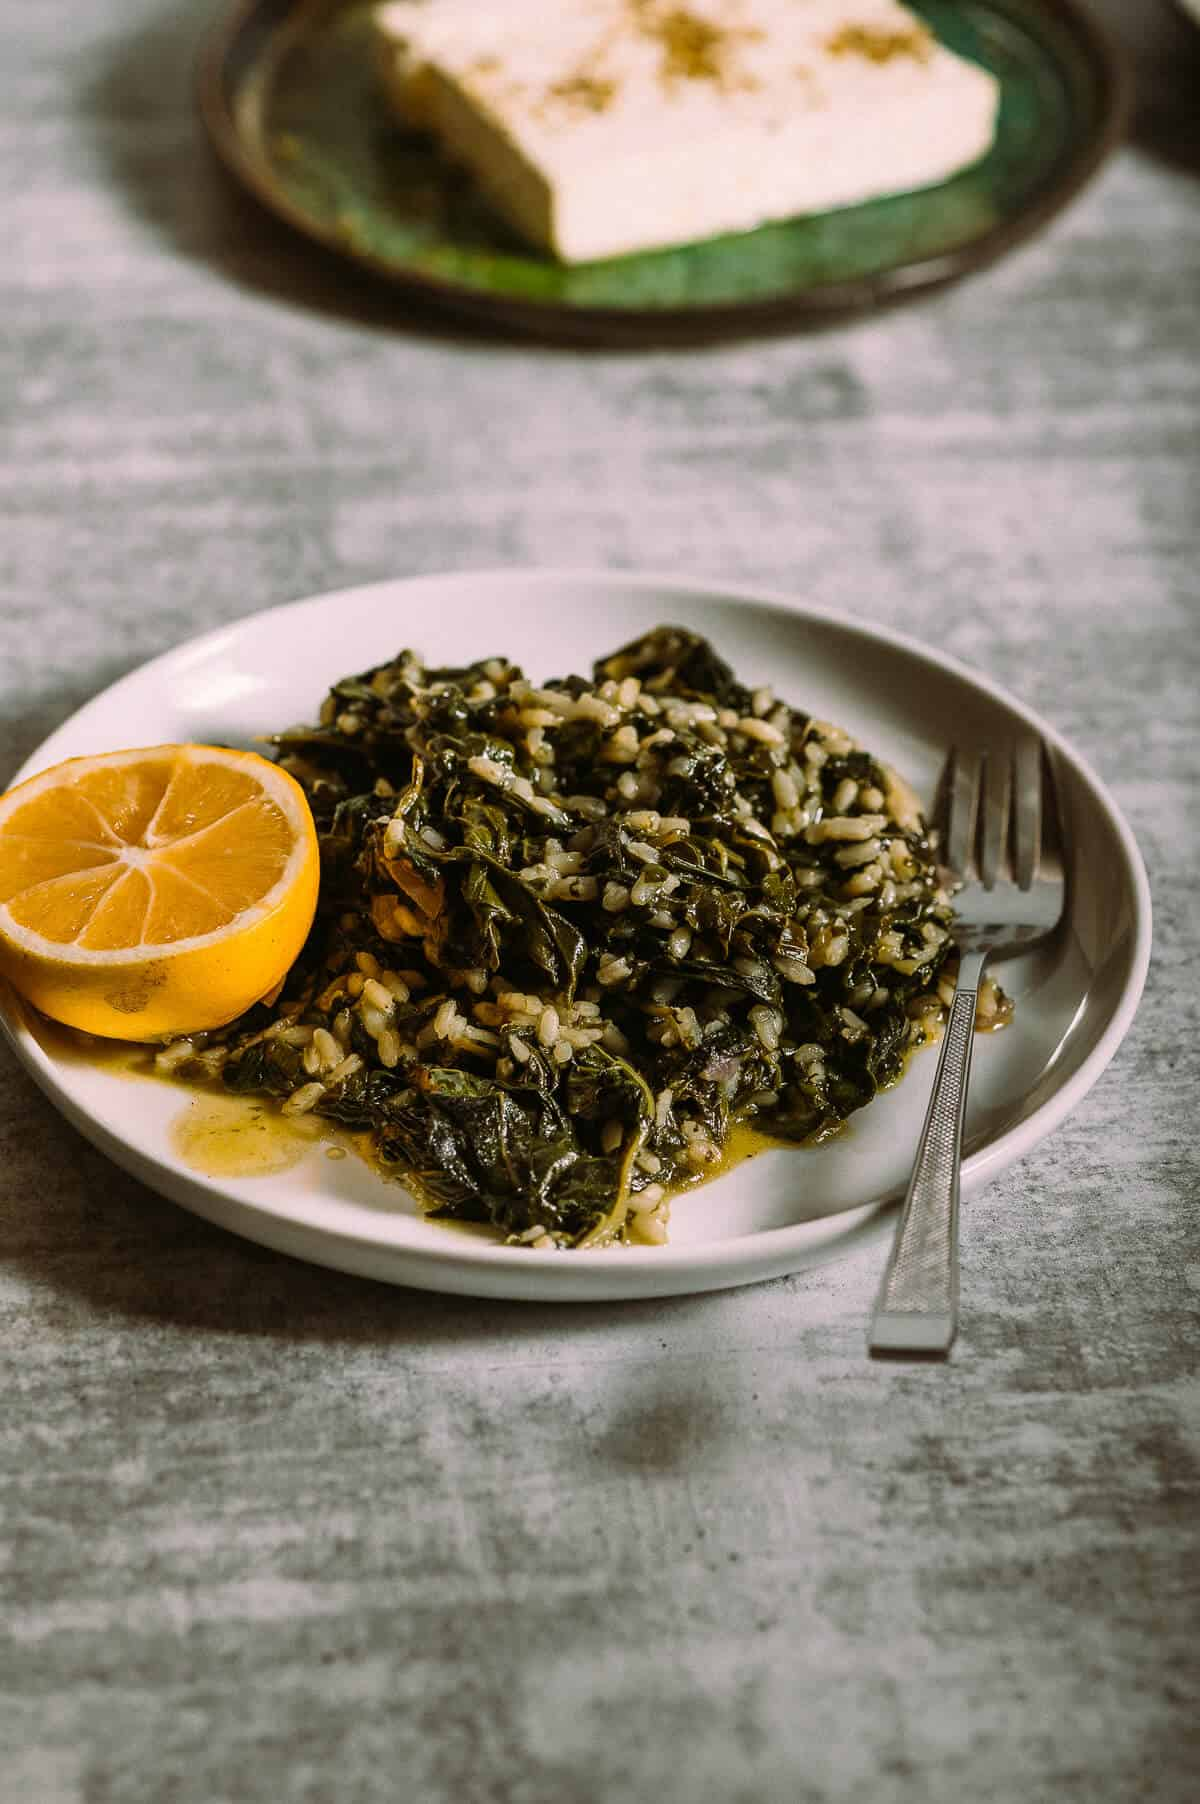 a white plate filled with cooked spinach and rice served with a lemon wedge and feta cheese